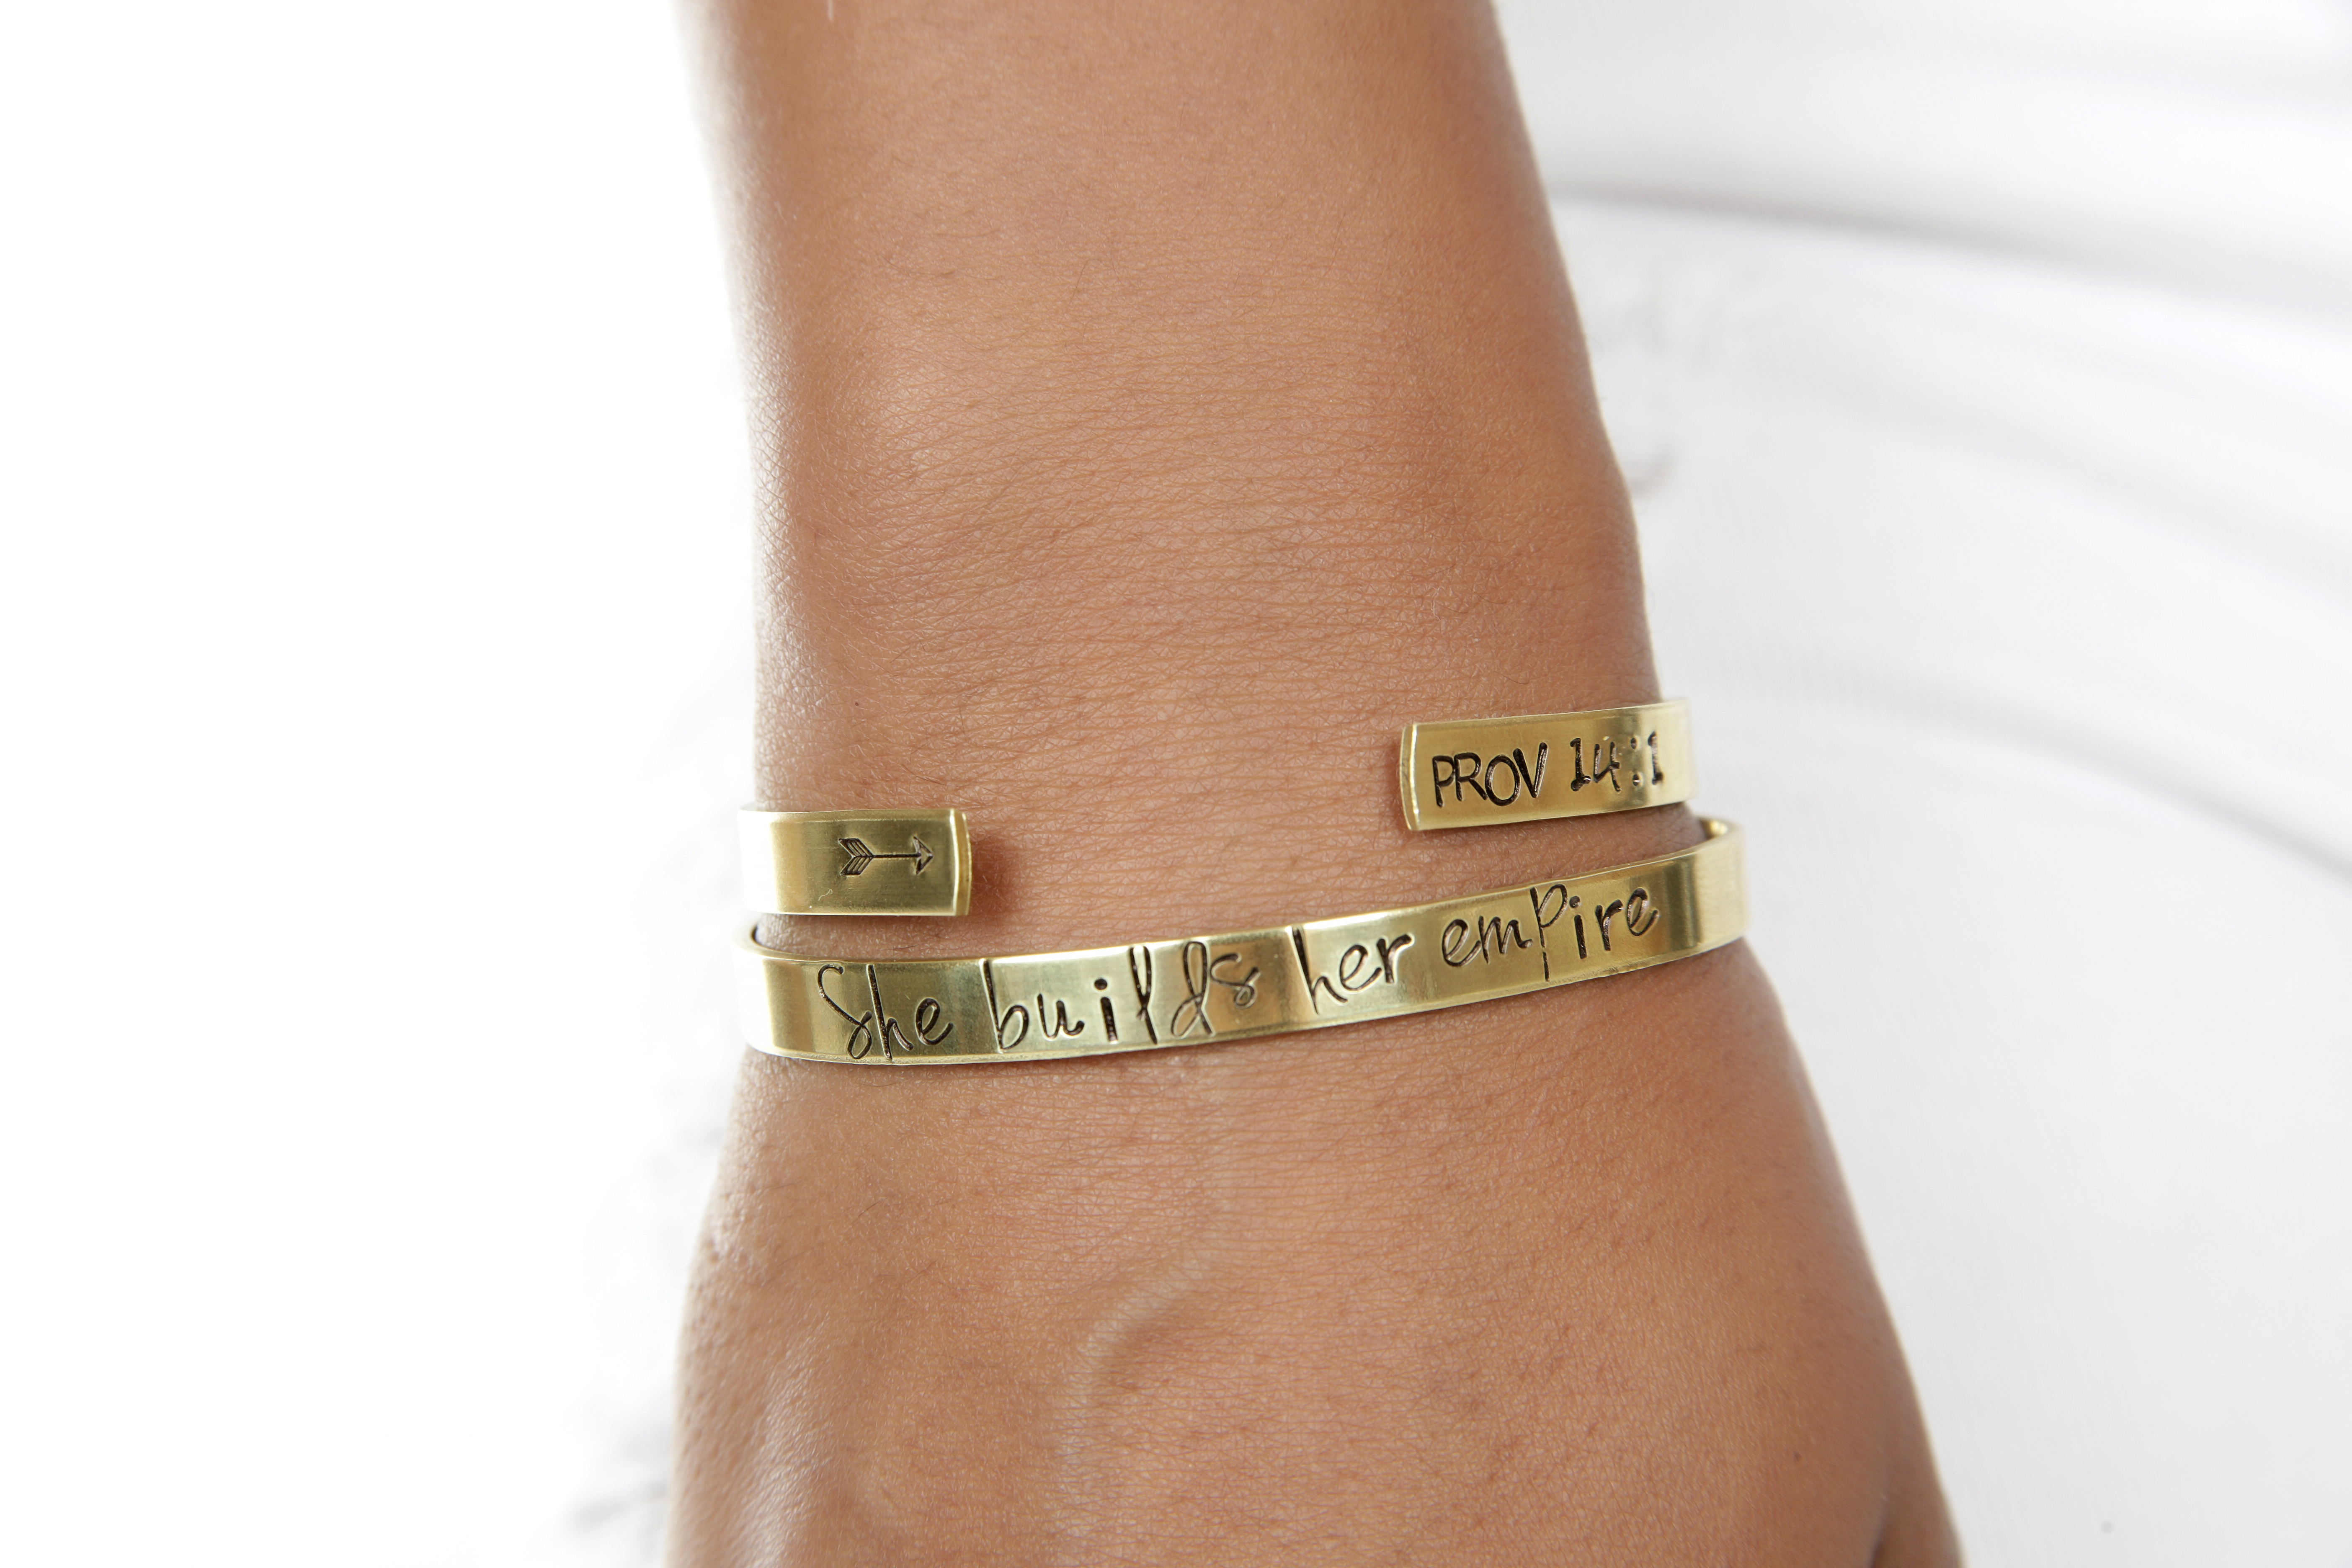 Blessed Band Proverbs 14:1 Hand Stamped Cuff